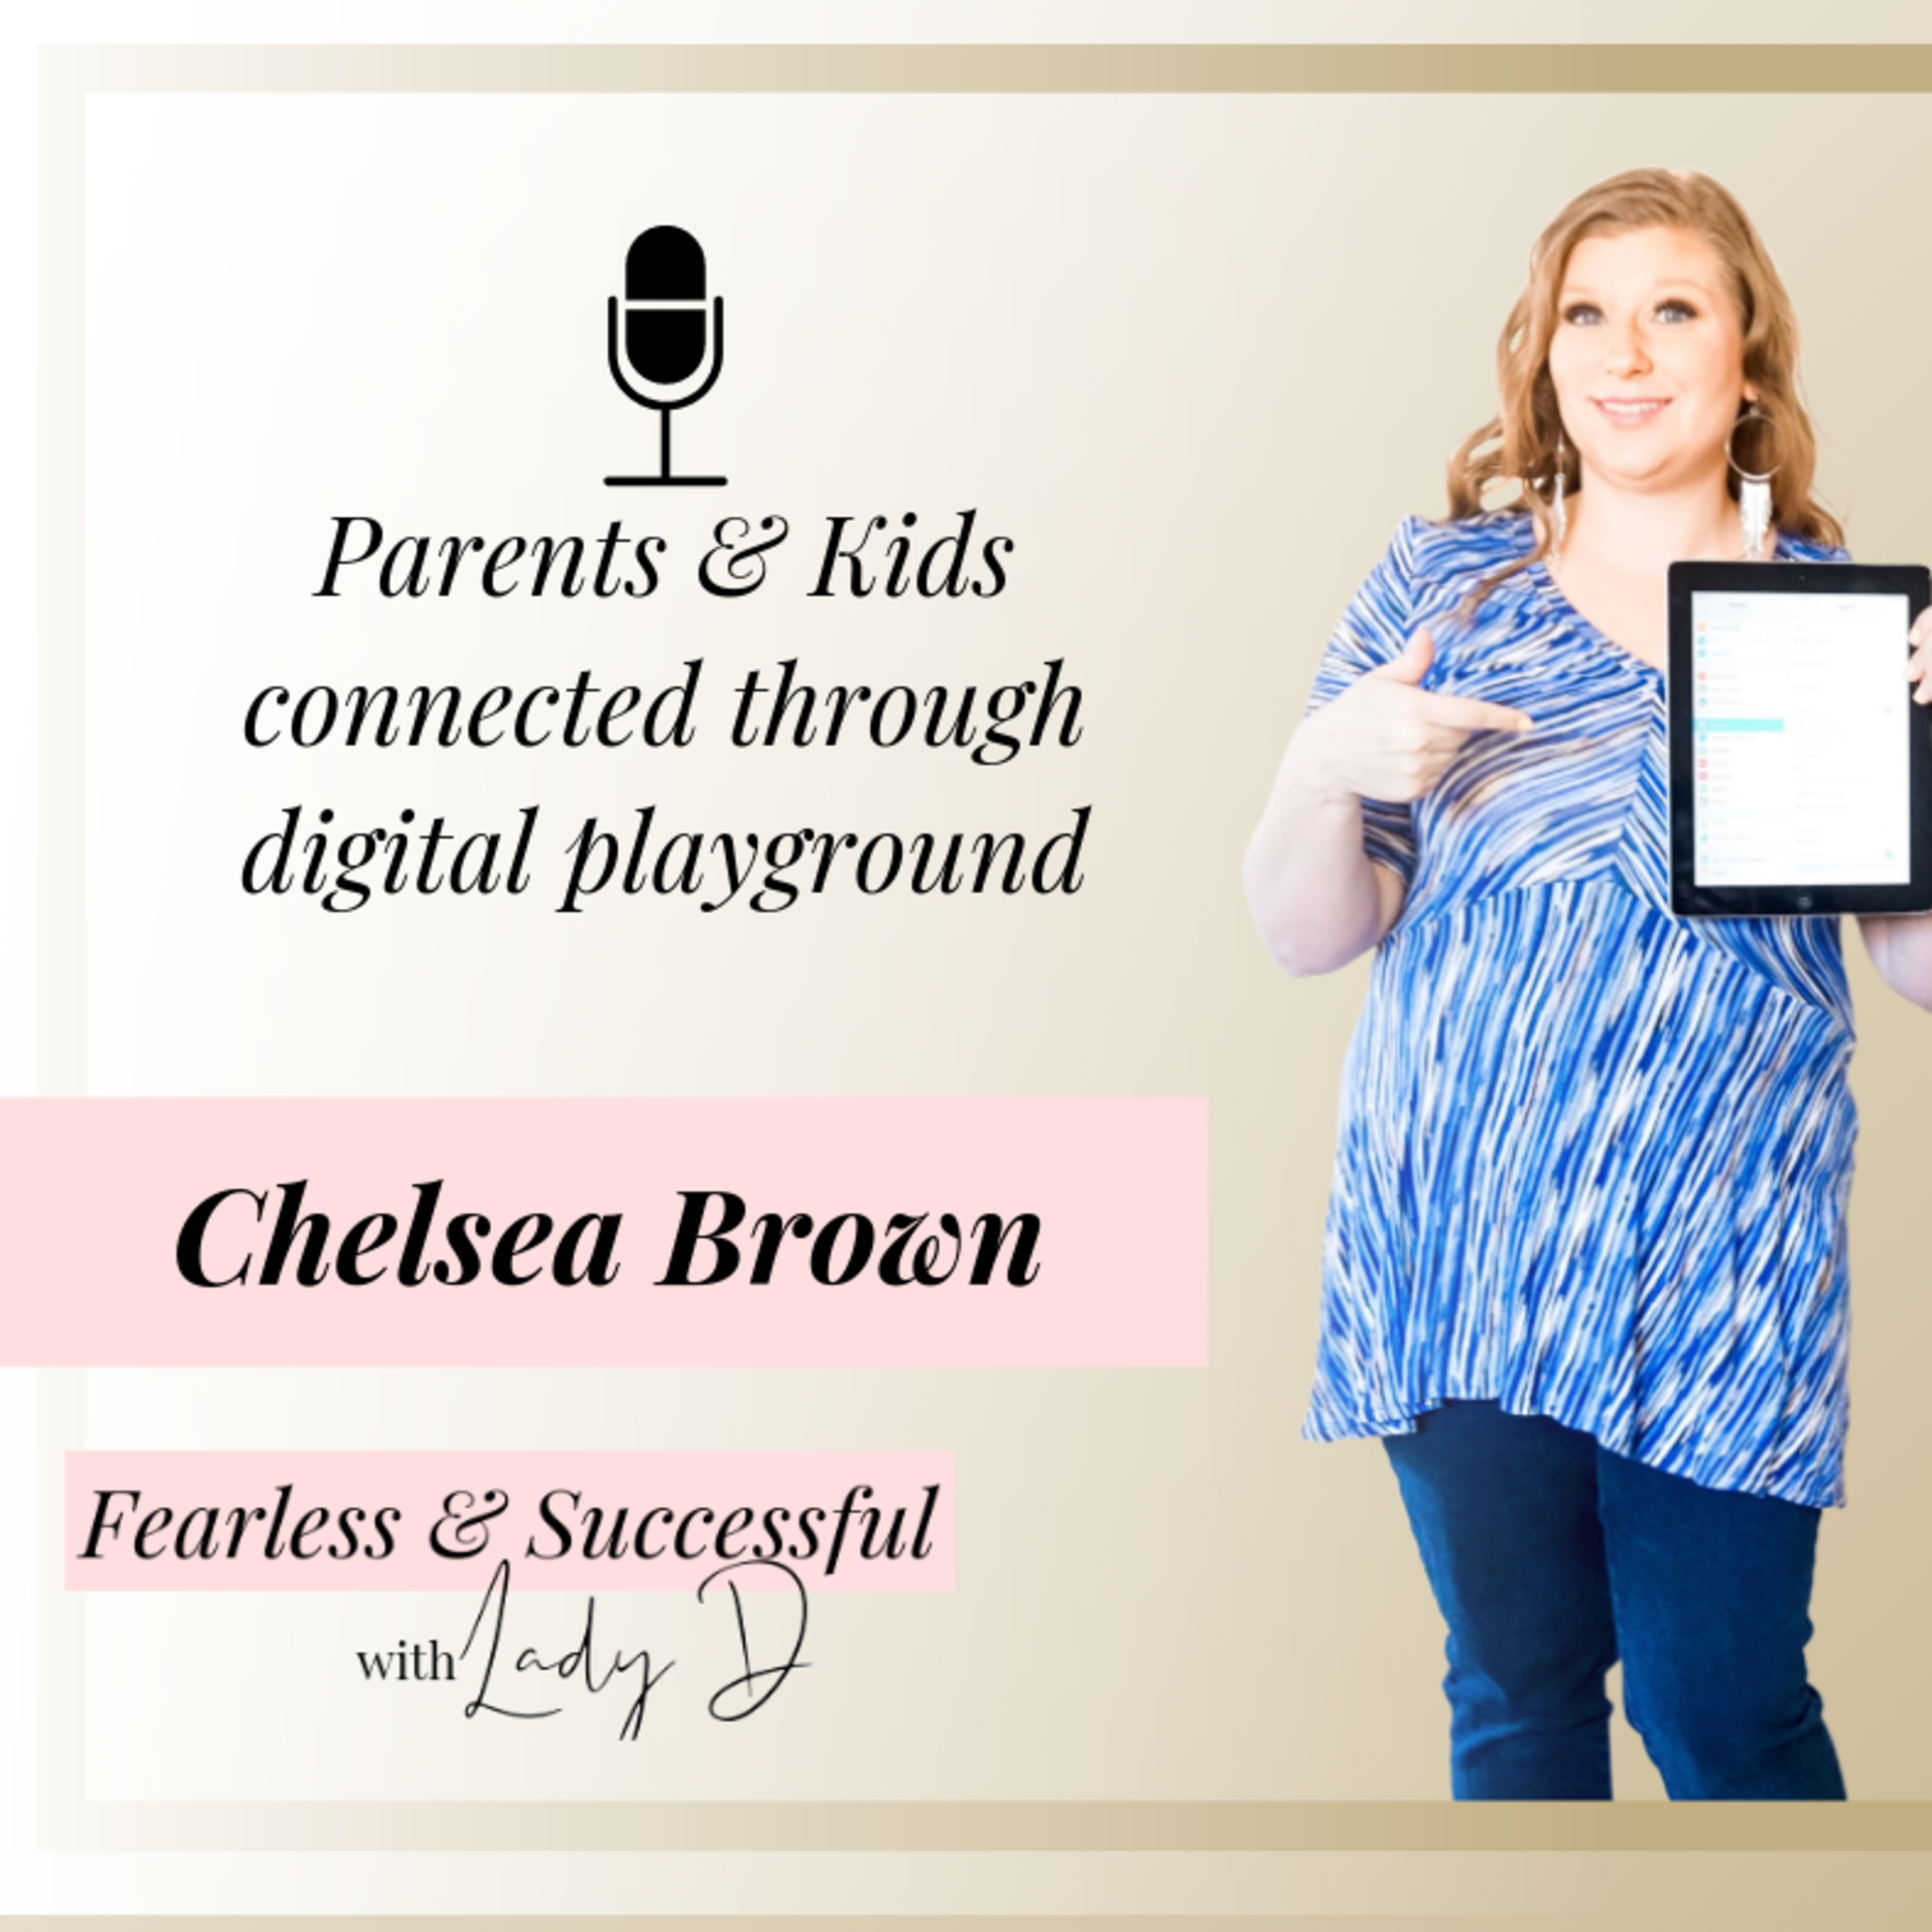 Episode #32: Chelsea Brown - Parents & Kids connected through digital playground